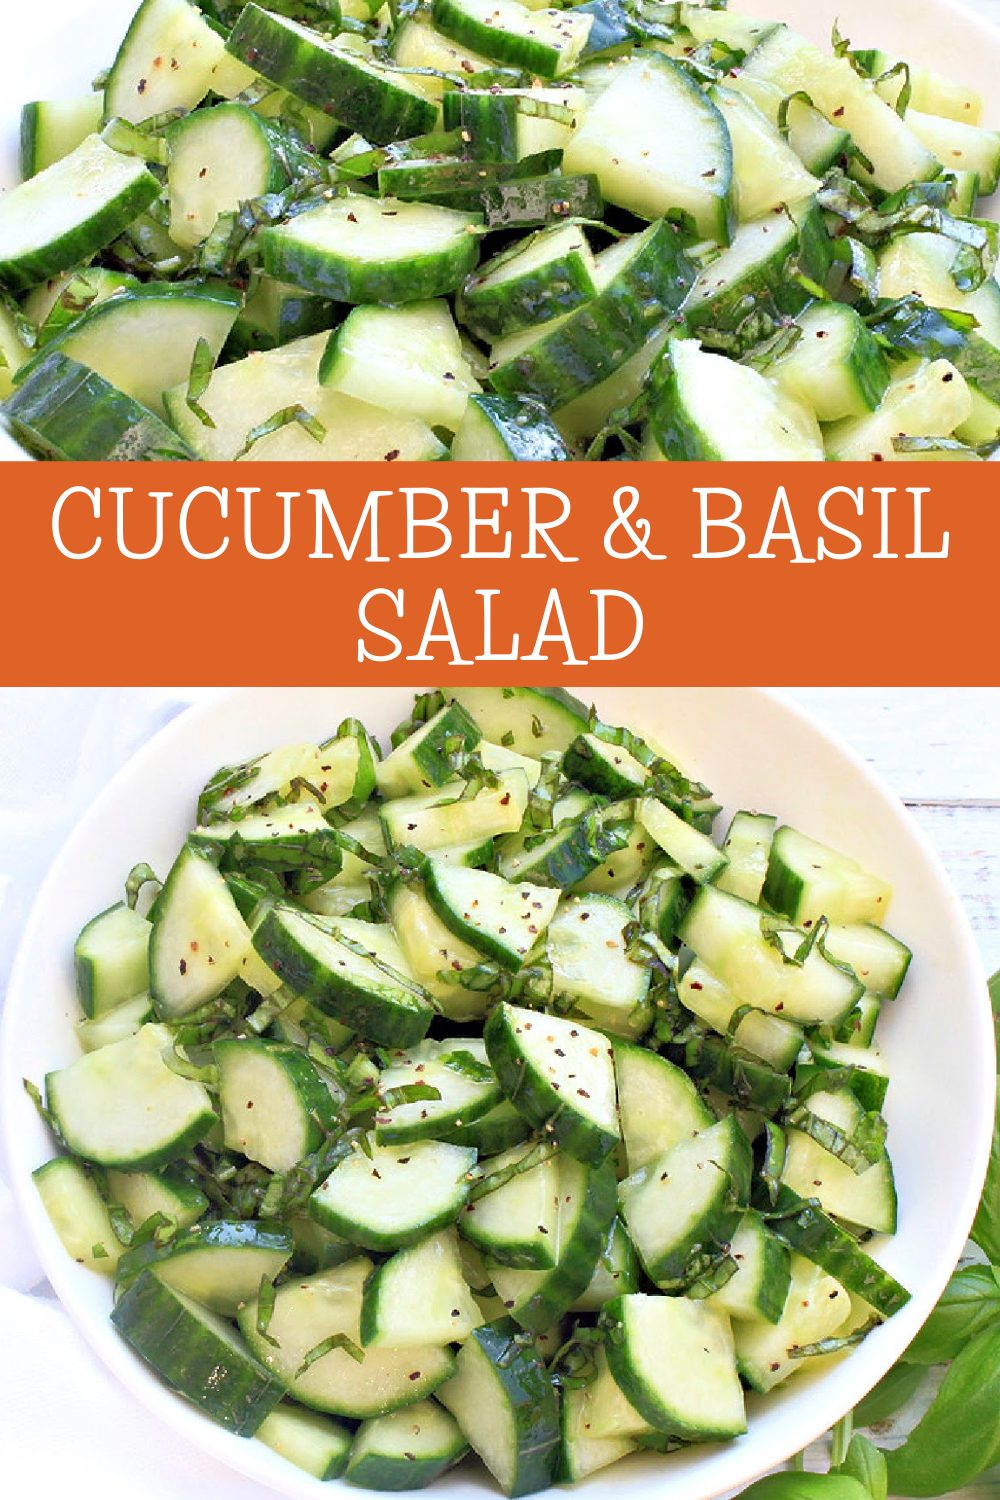 Cucumber and Basil Salad ~ Simple ingredients and minimal prep work make this easy and fresh side dish a summertime winner!  via @thiswifecooks